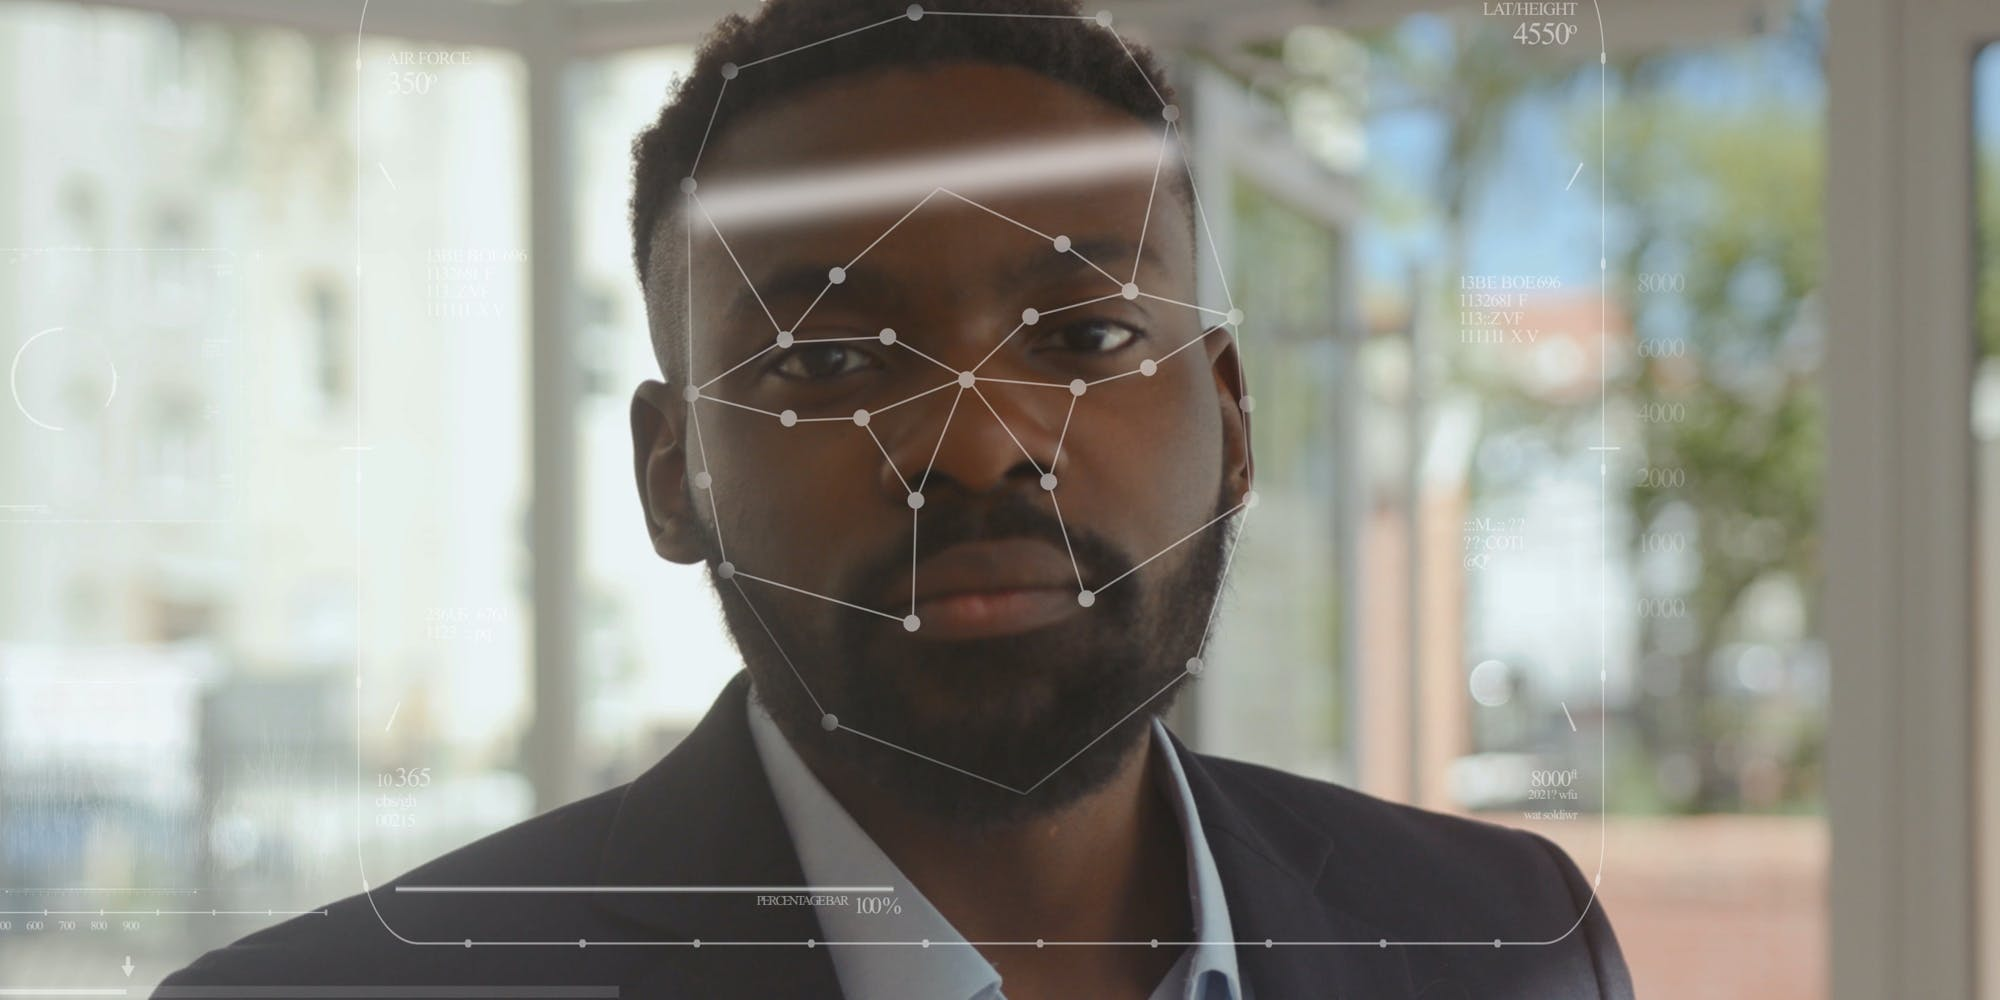 A man being scanned with facial recognition technology.